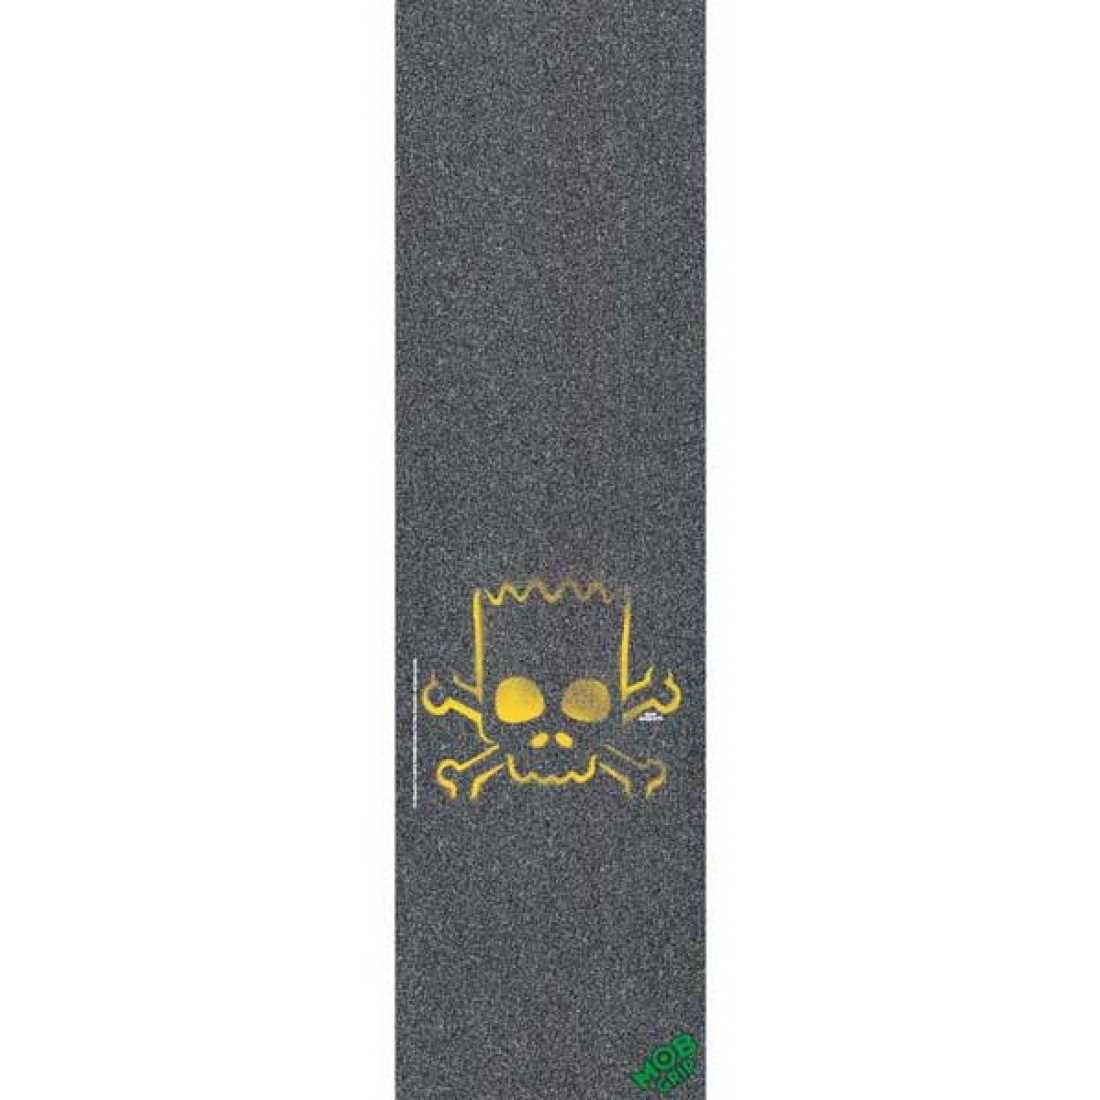 MOB-Simpsons Bart Skull Grip Tape